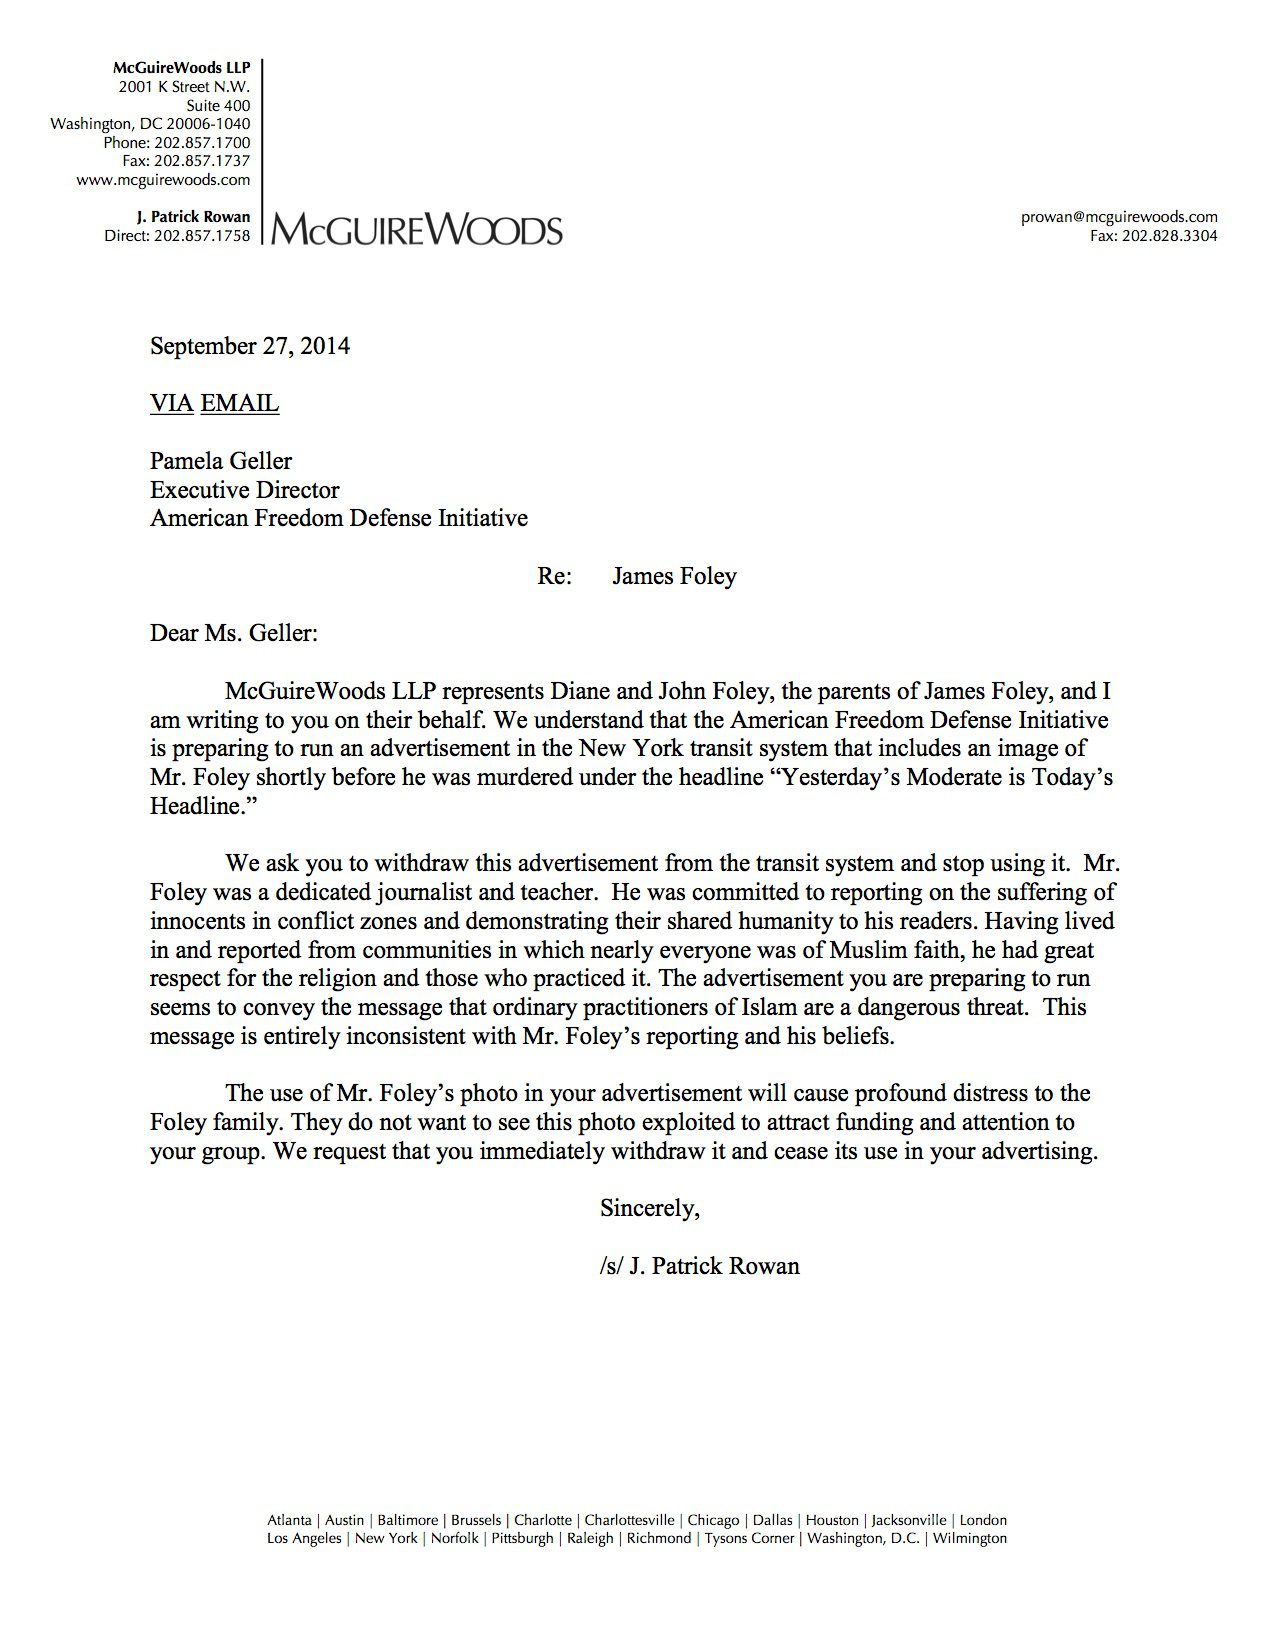 Active_60692374_1_Letter_to_Pamela_Geller copy